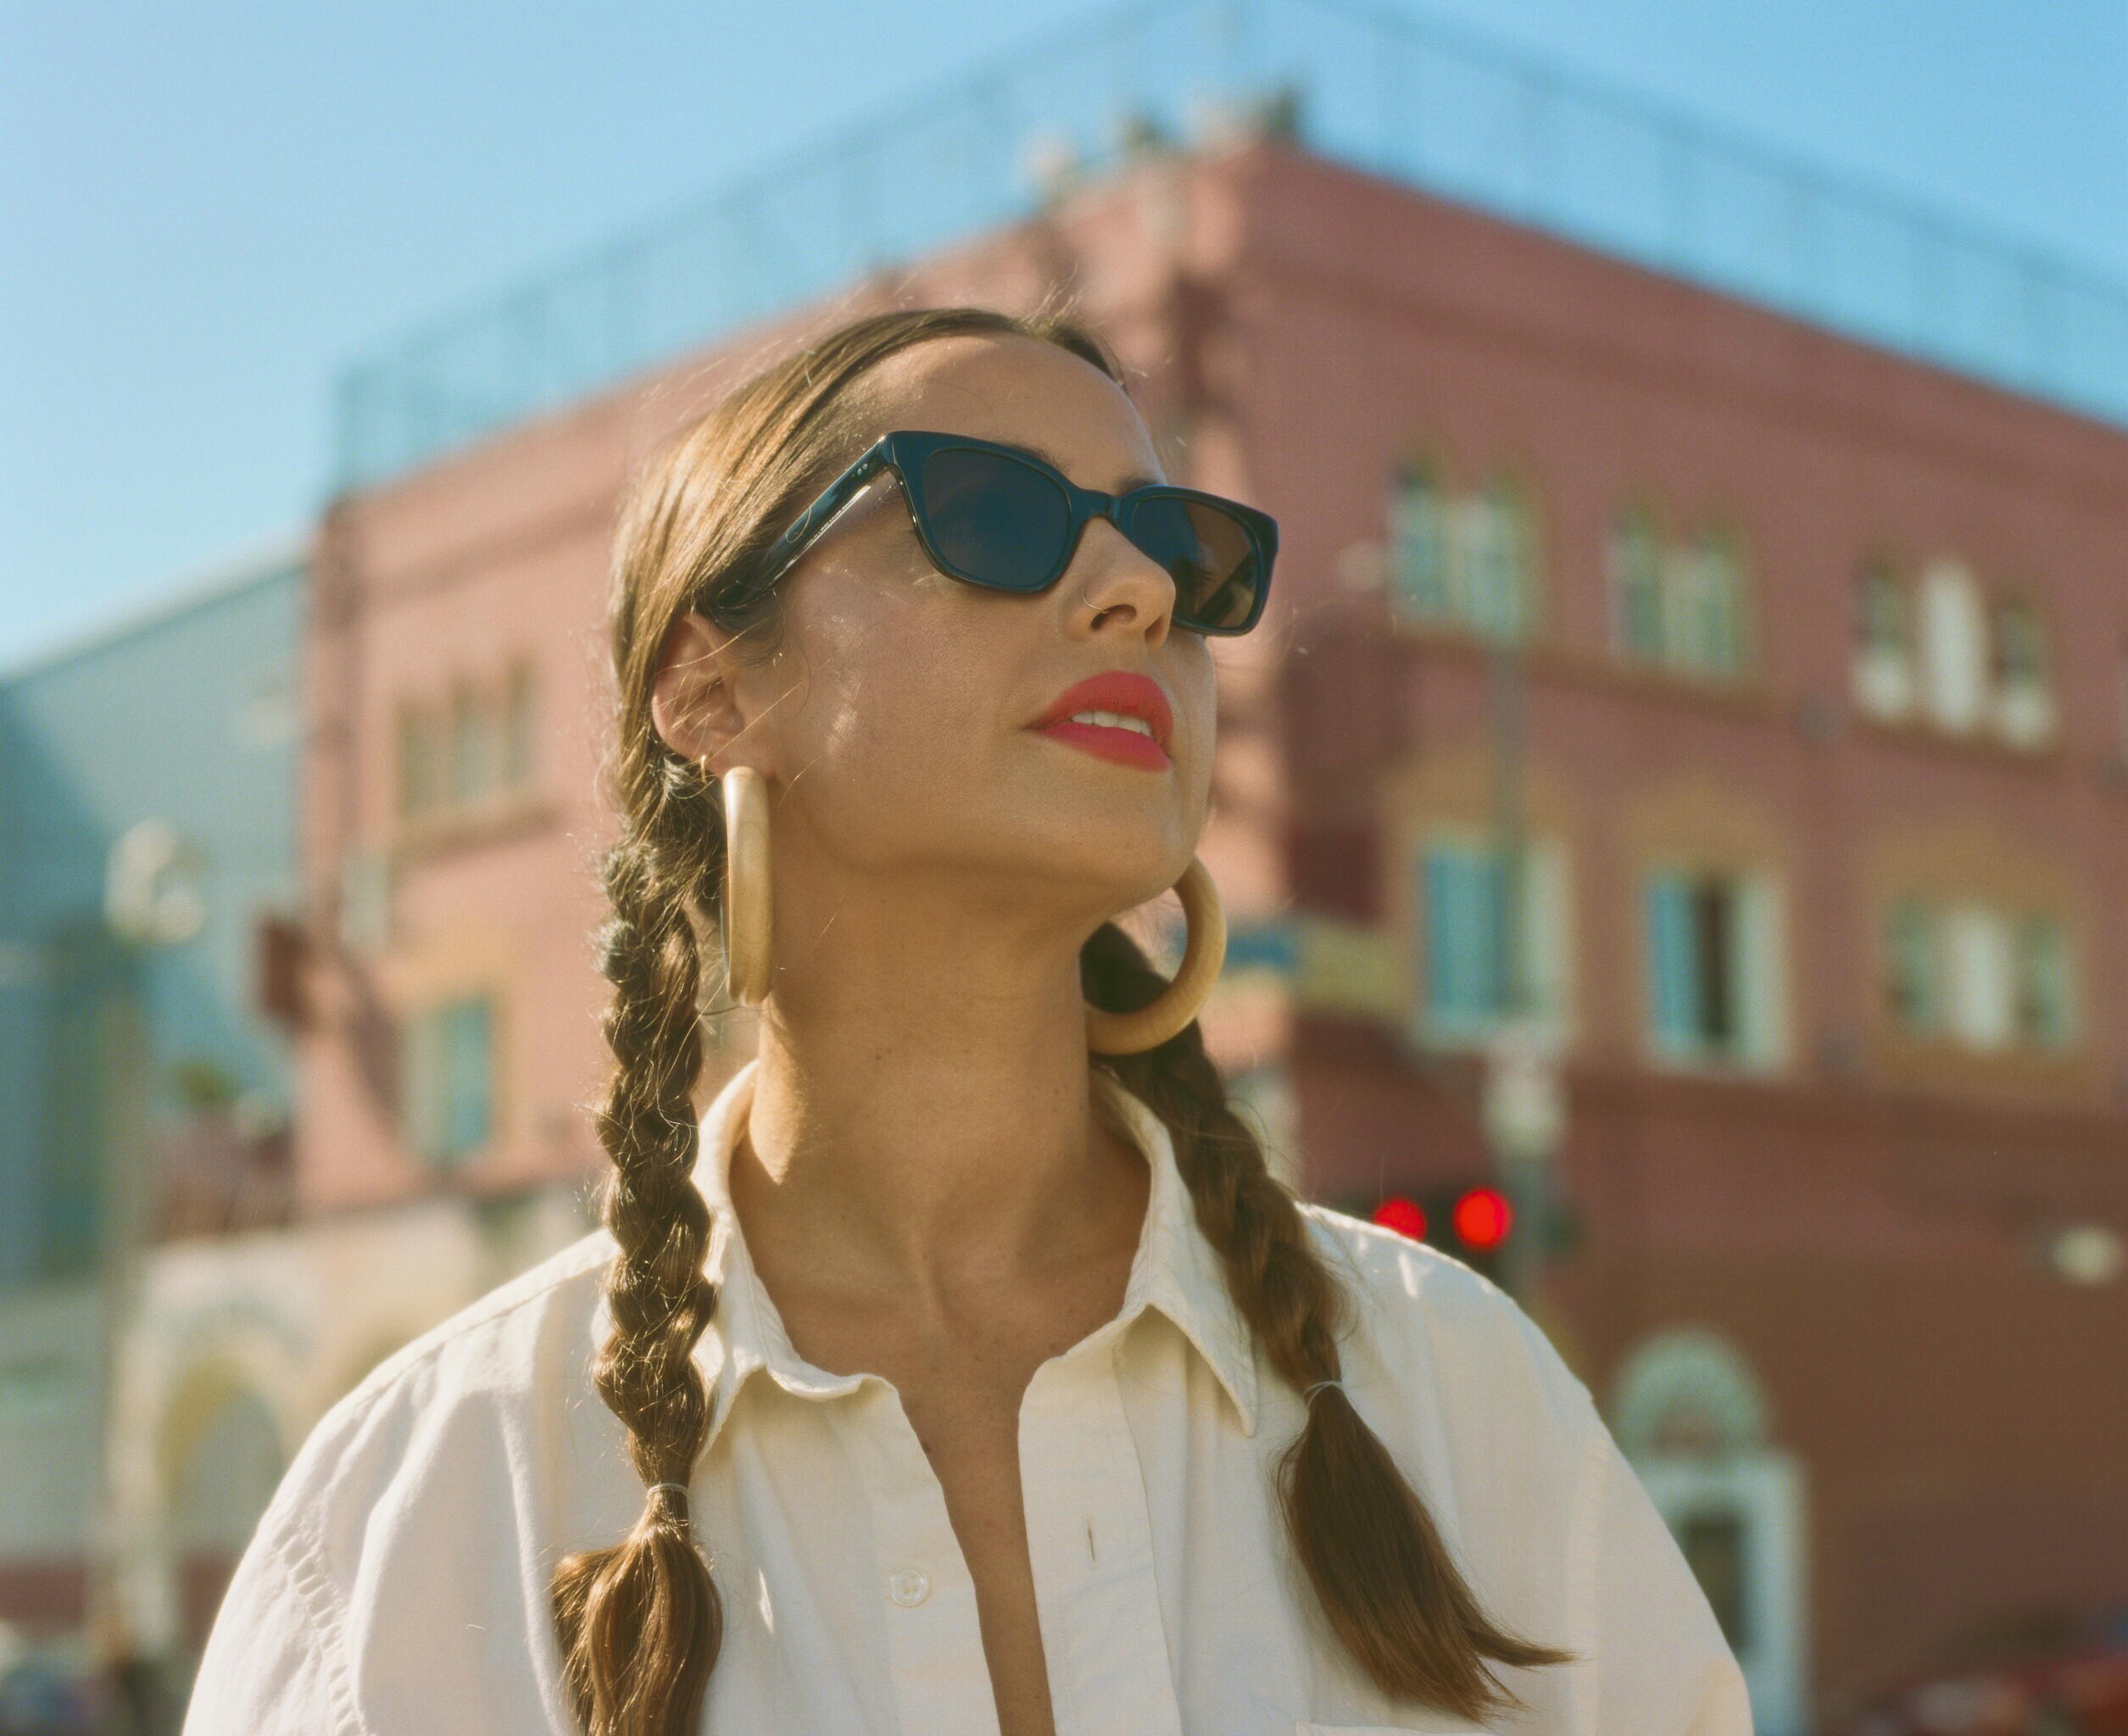 Garrett Leight Clare Vivier Sunglasses Collaboration